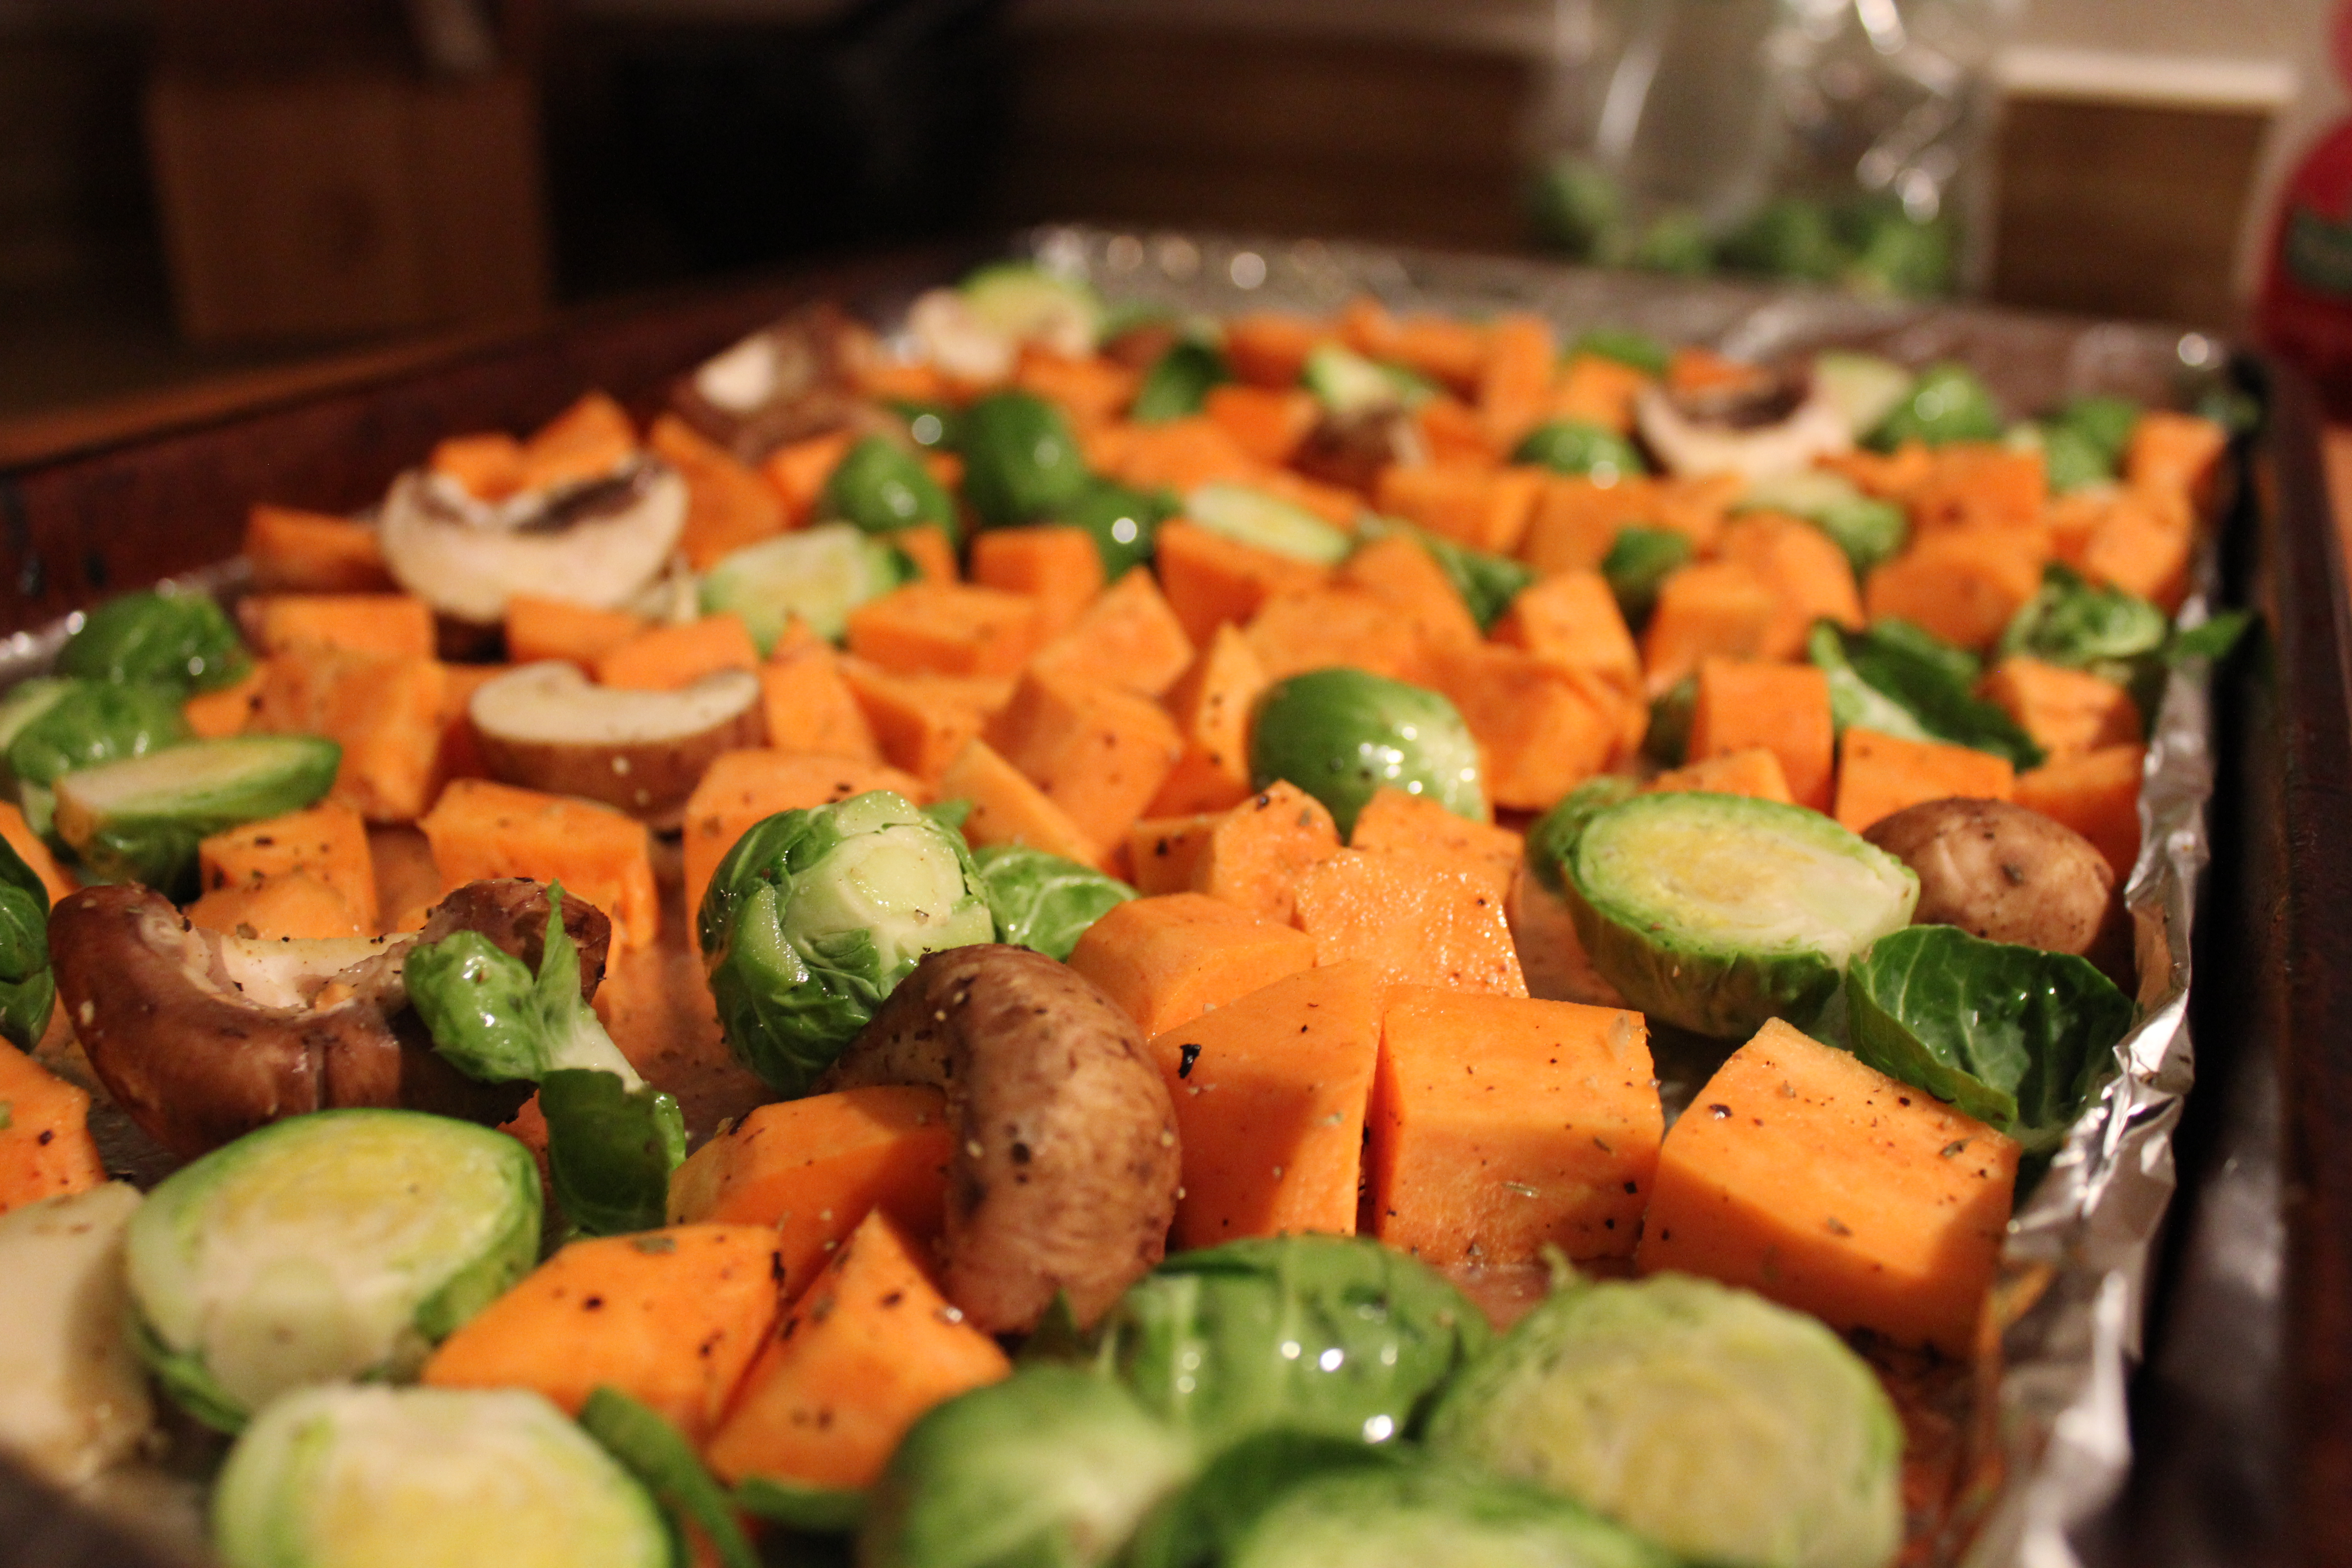 Up close veggies to be roasted